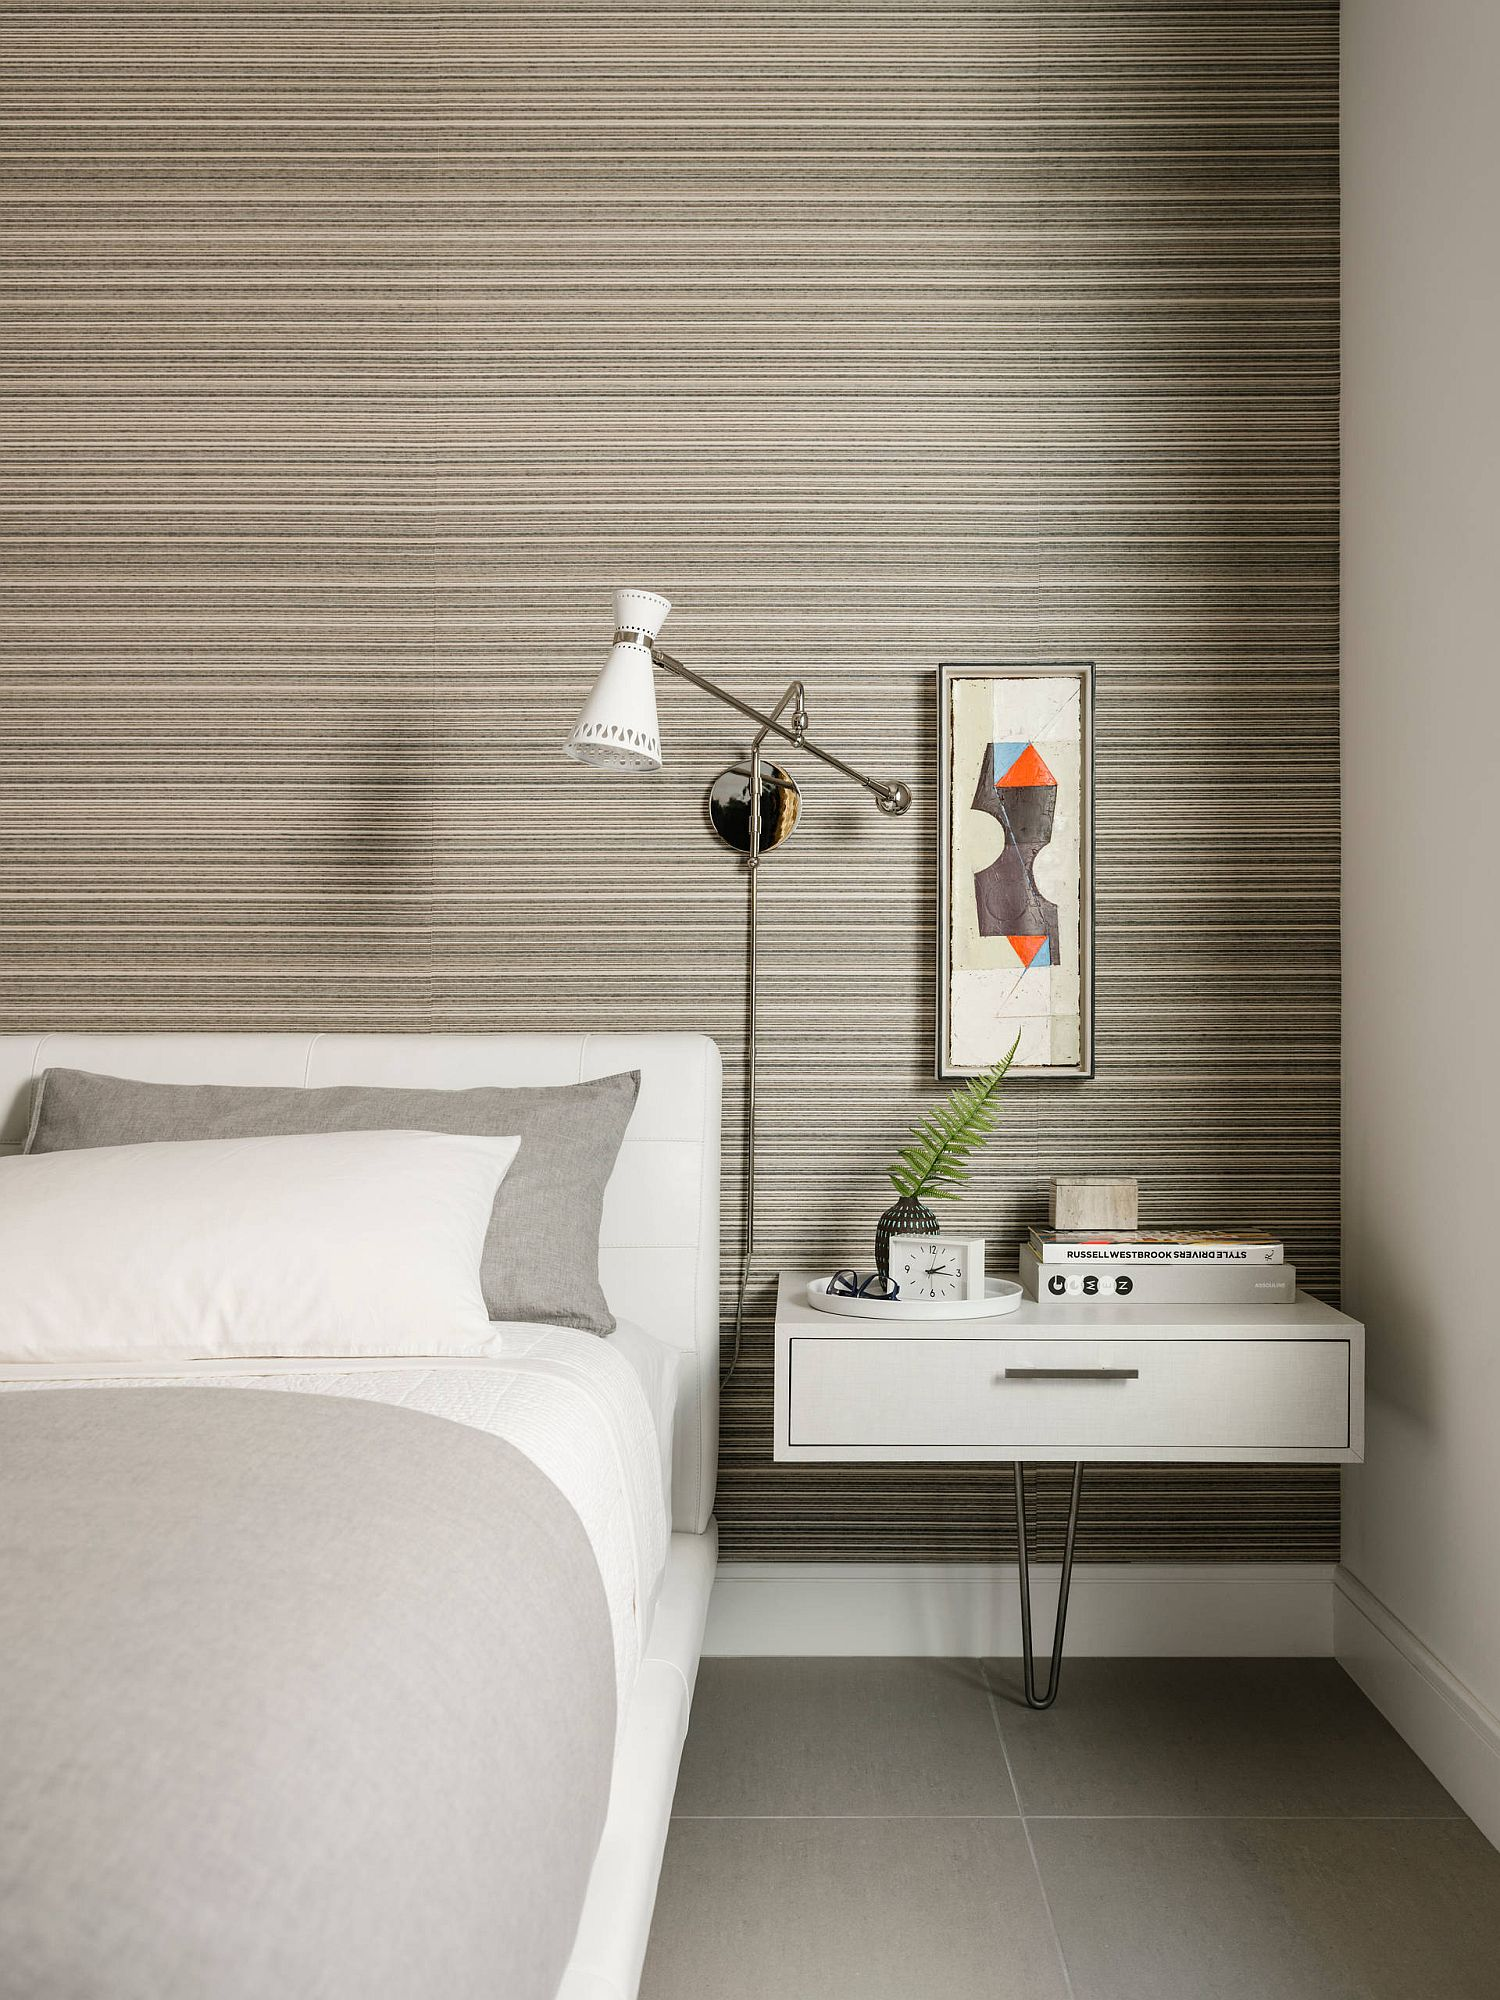 Simple color scheme that uses just two colors and small bedside floating table create a more space-conscious bedroom